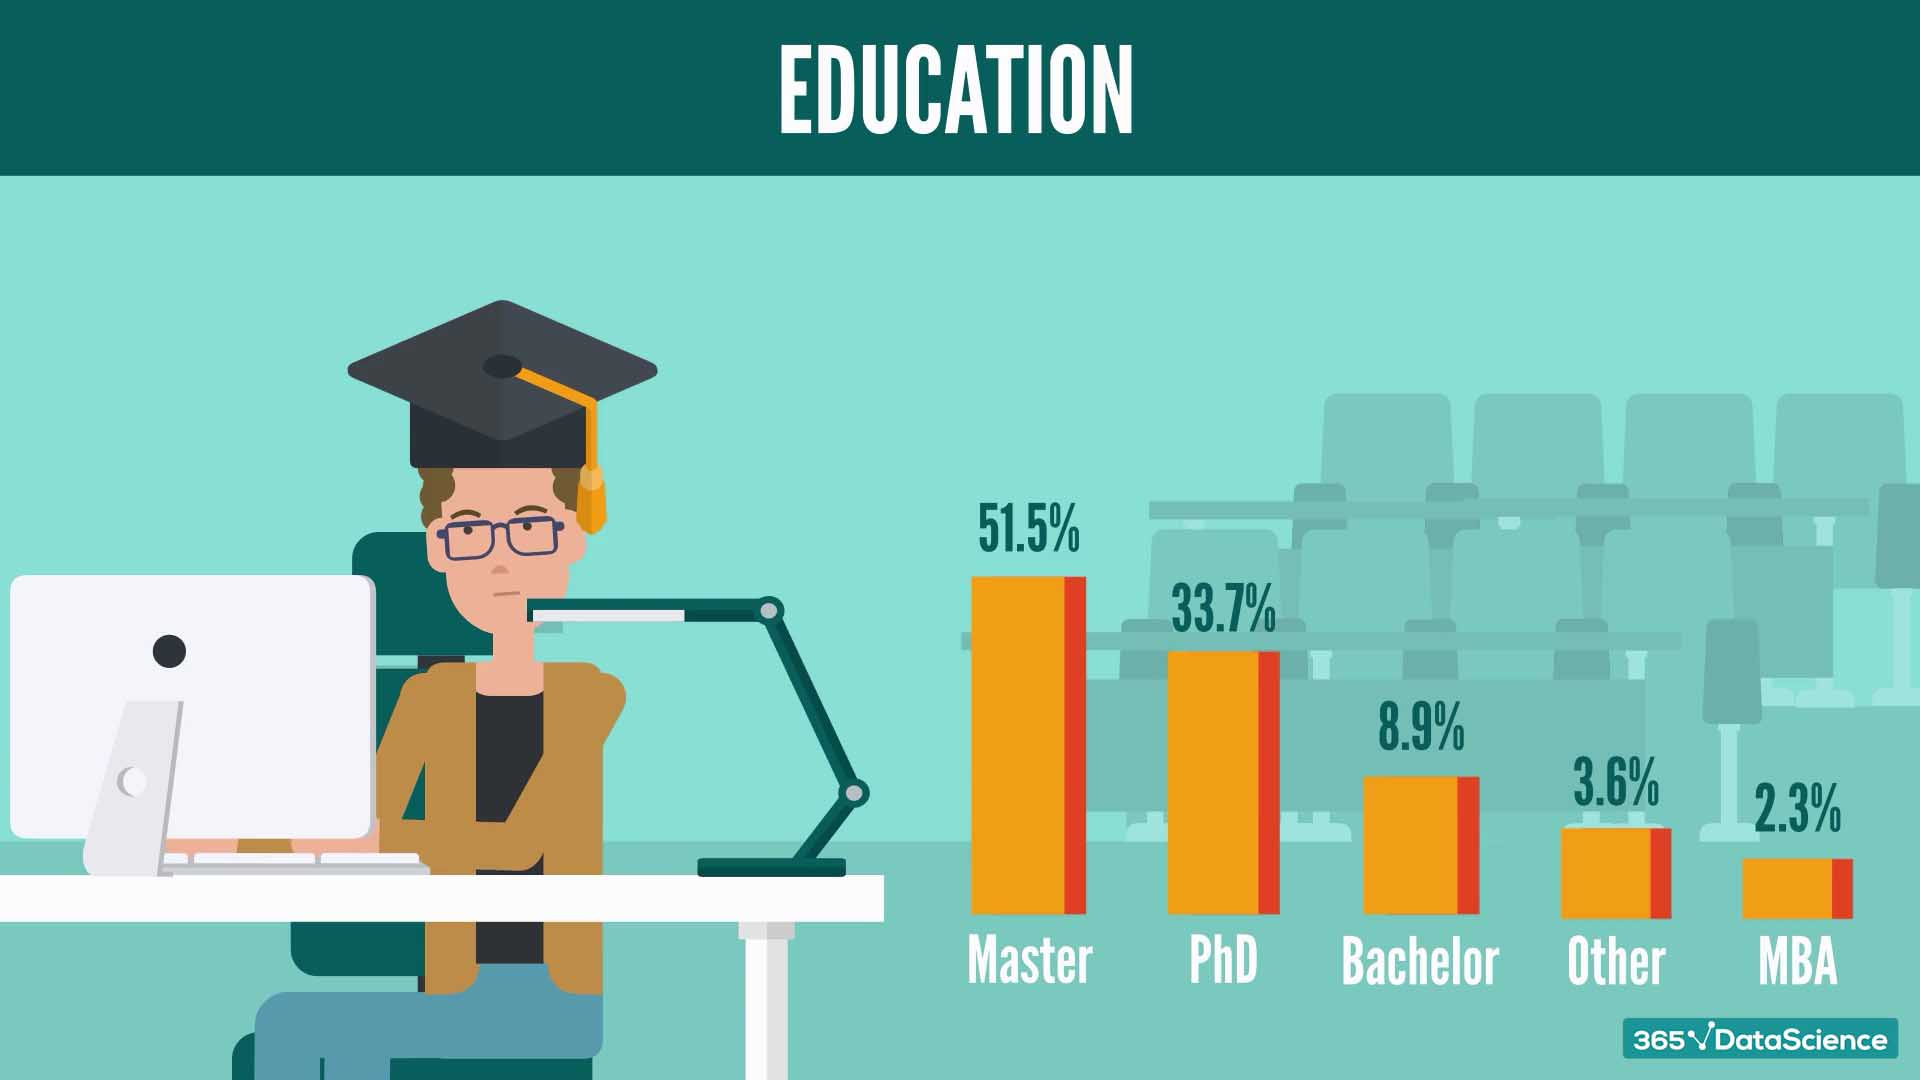 Required level of education for data scientists in the UK